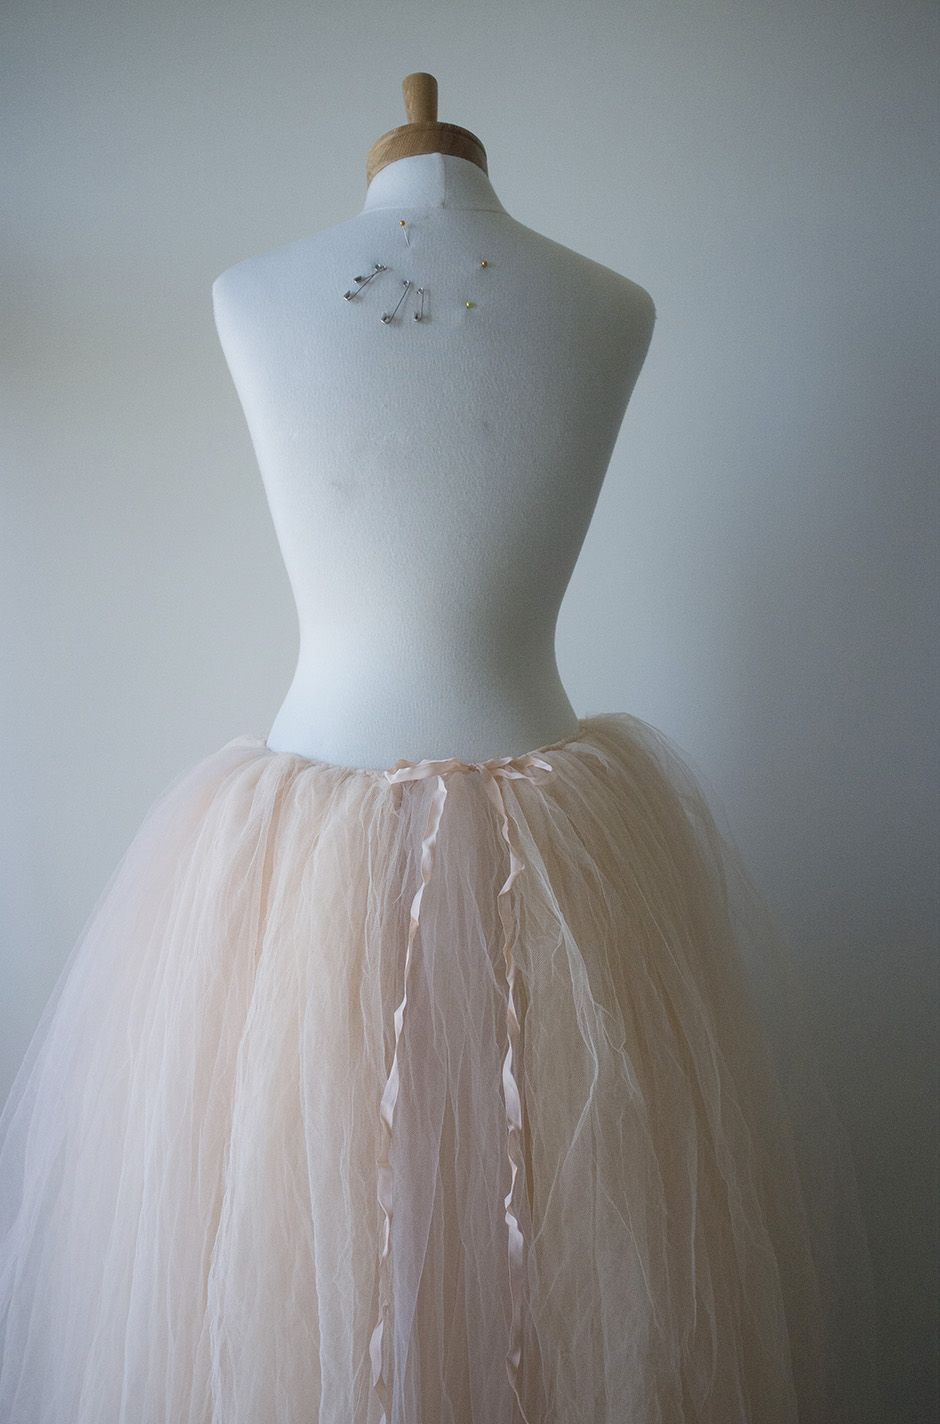 How to make a tulle skirt by Sue Bryce | Photo equipment and ...